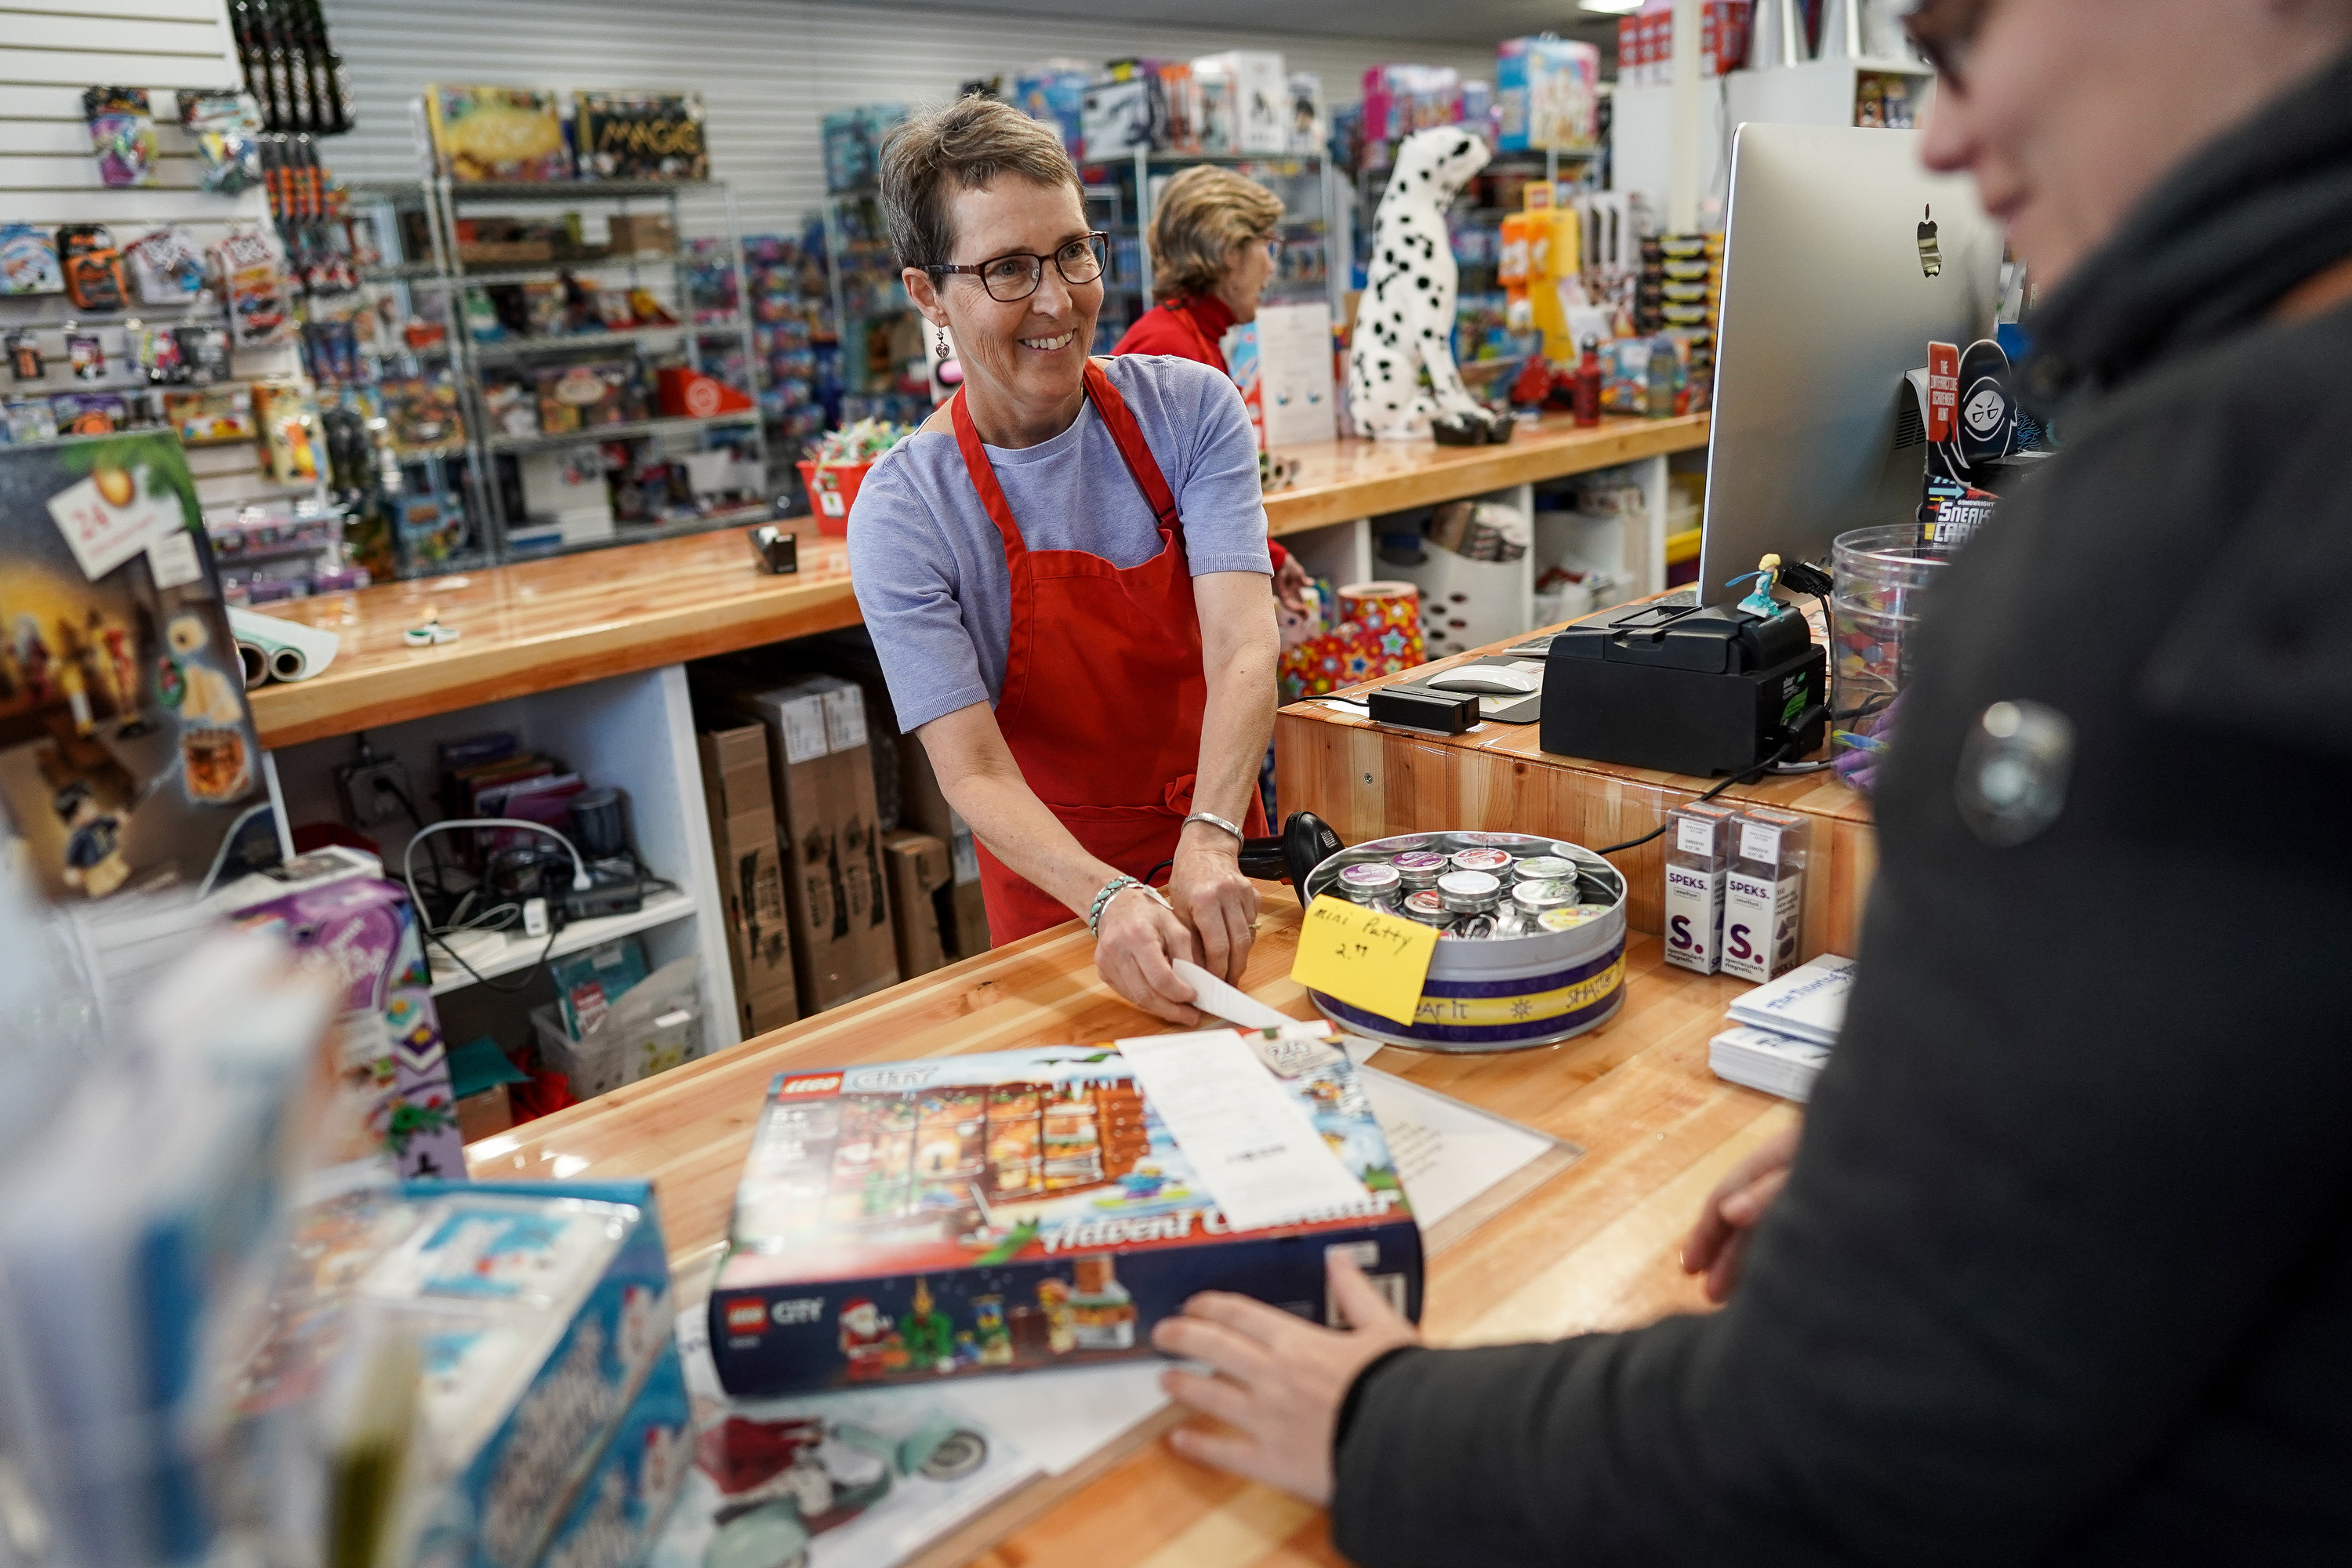 Swantje Johnson rings up customer Ashleigh Moore at The Tutoring Toy in Salt Lake City on Tuesday, Nov. 26, 2019.